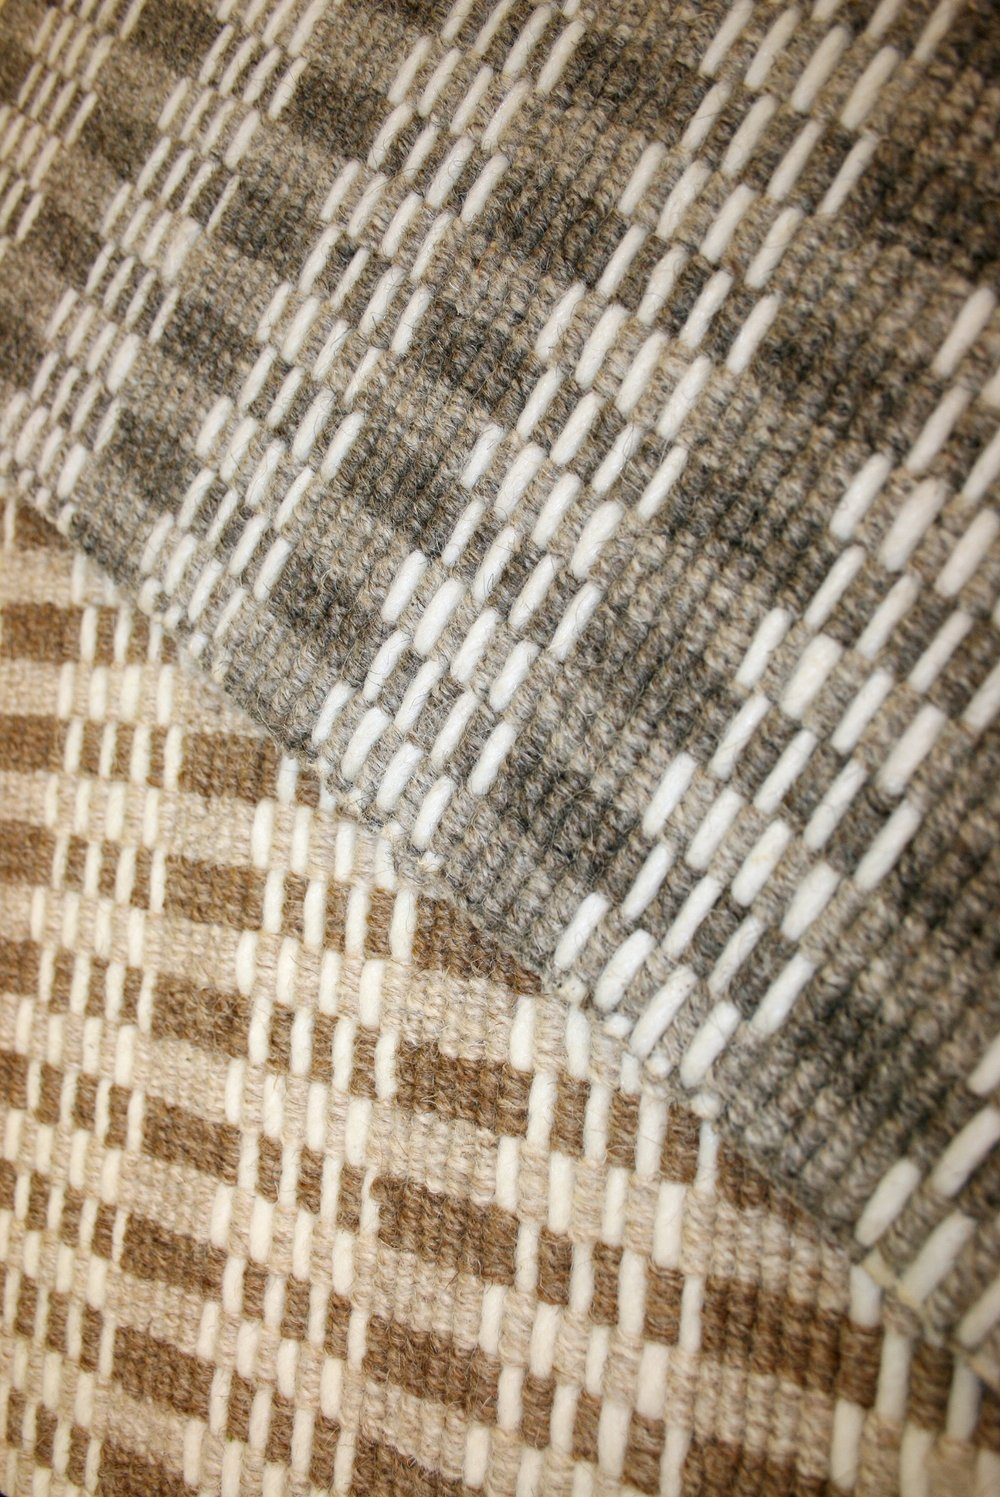 Plaid wool carpet in neutral and gray